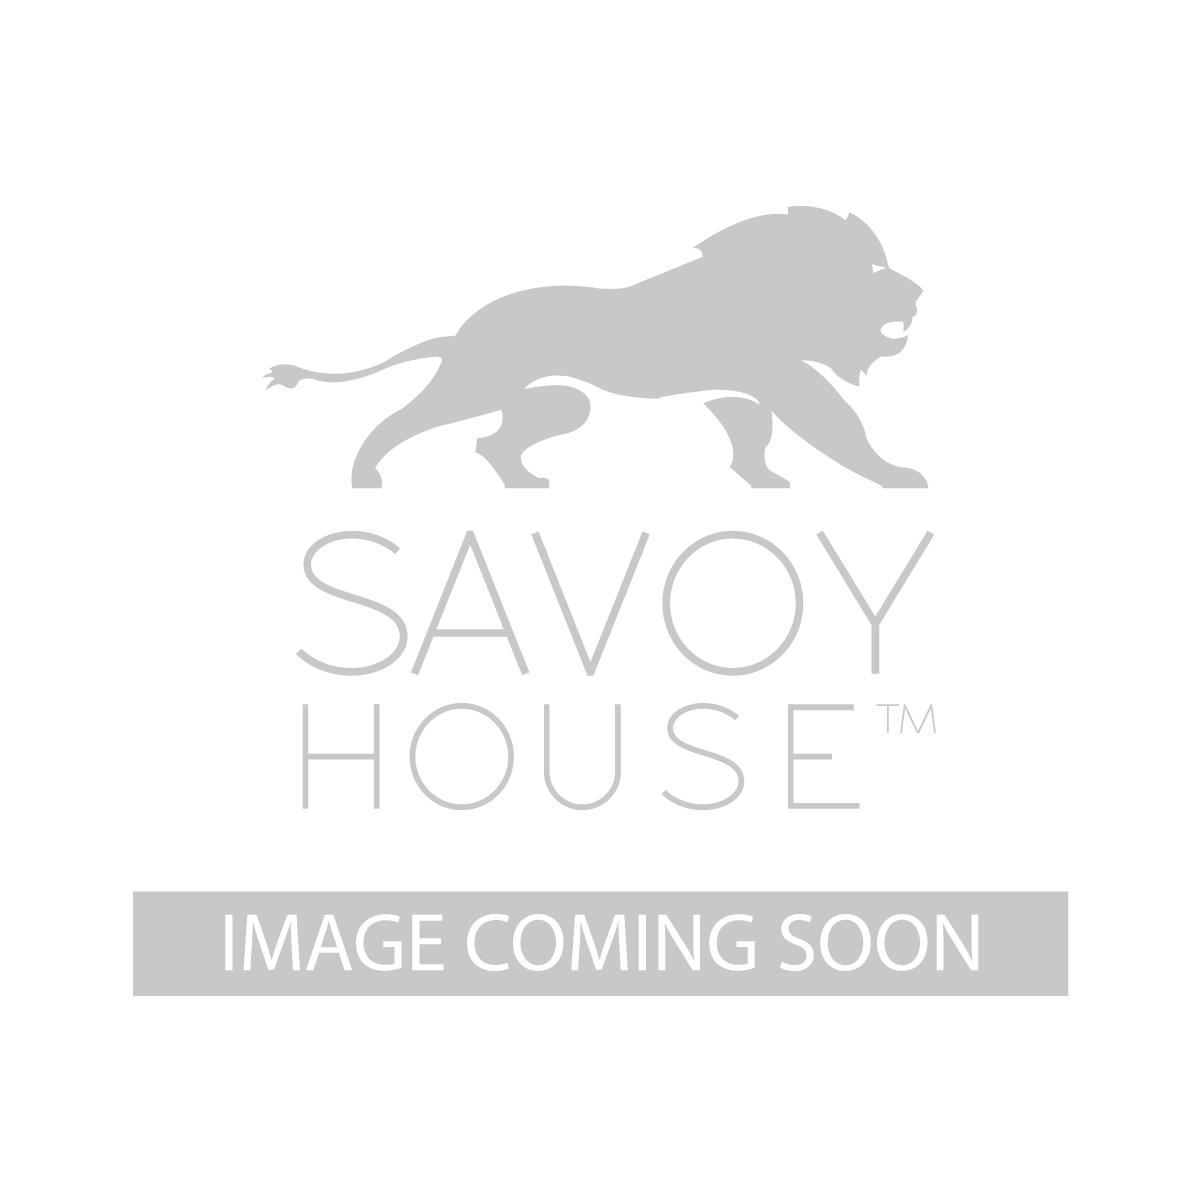 1 9260 6 112 carrolton 6 light chandelier by savoy house for Savoy house com